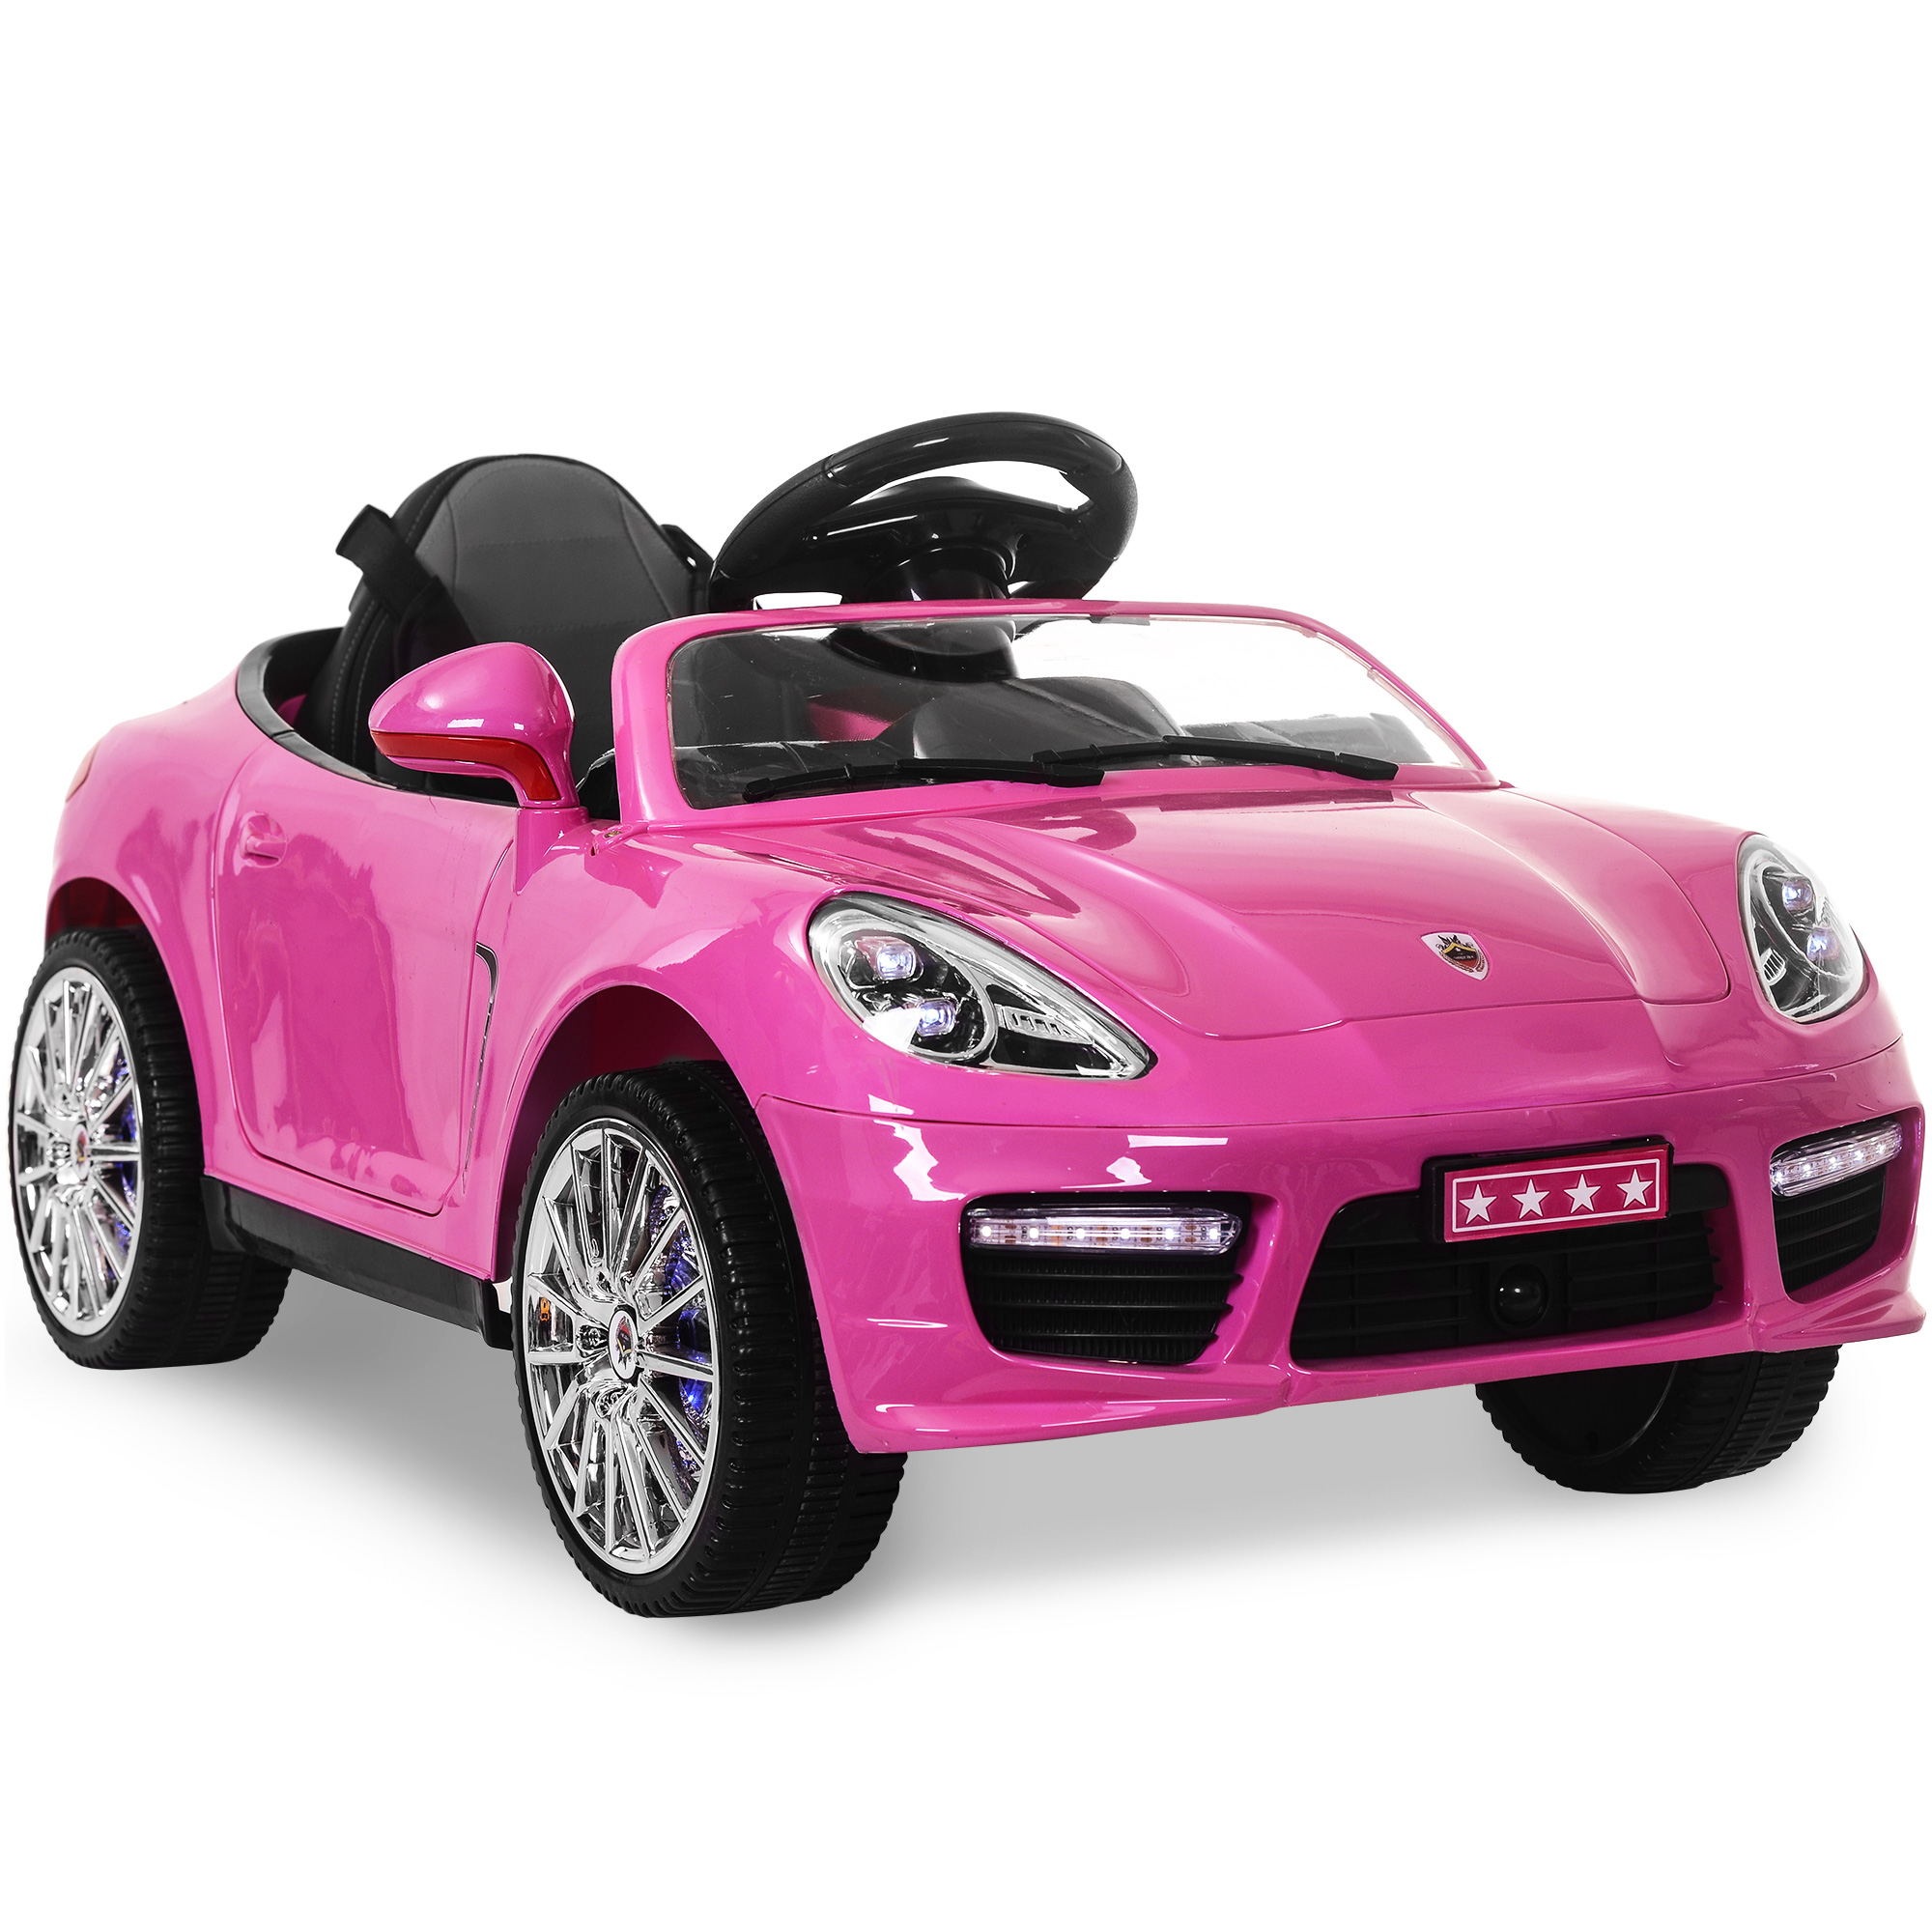 Merax 12V Ride On Car Porsche Style Sports Car W/MP3 Electric Battery Power Remote Control,Pink